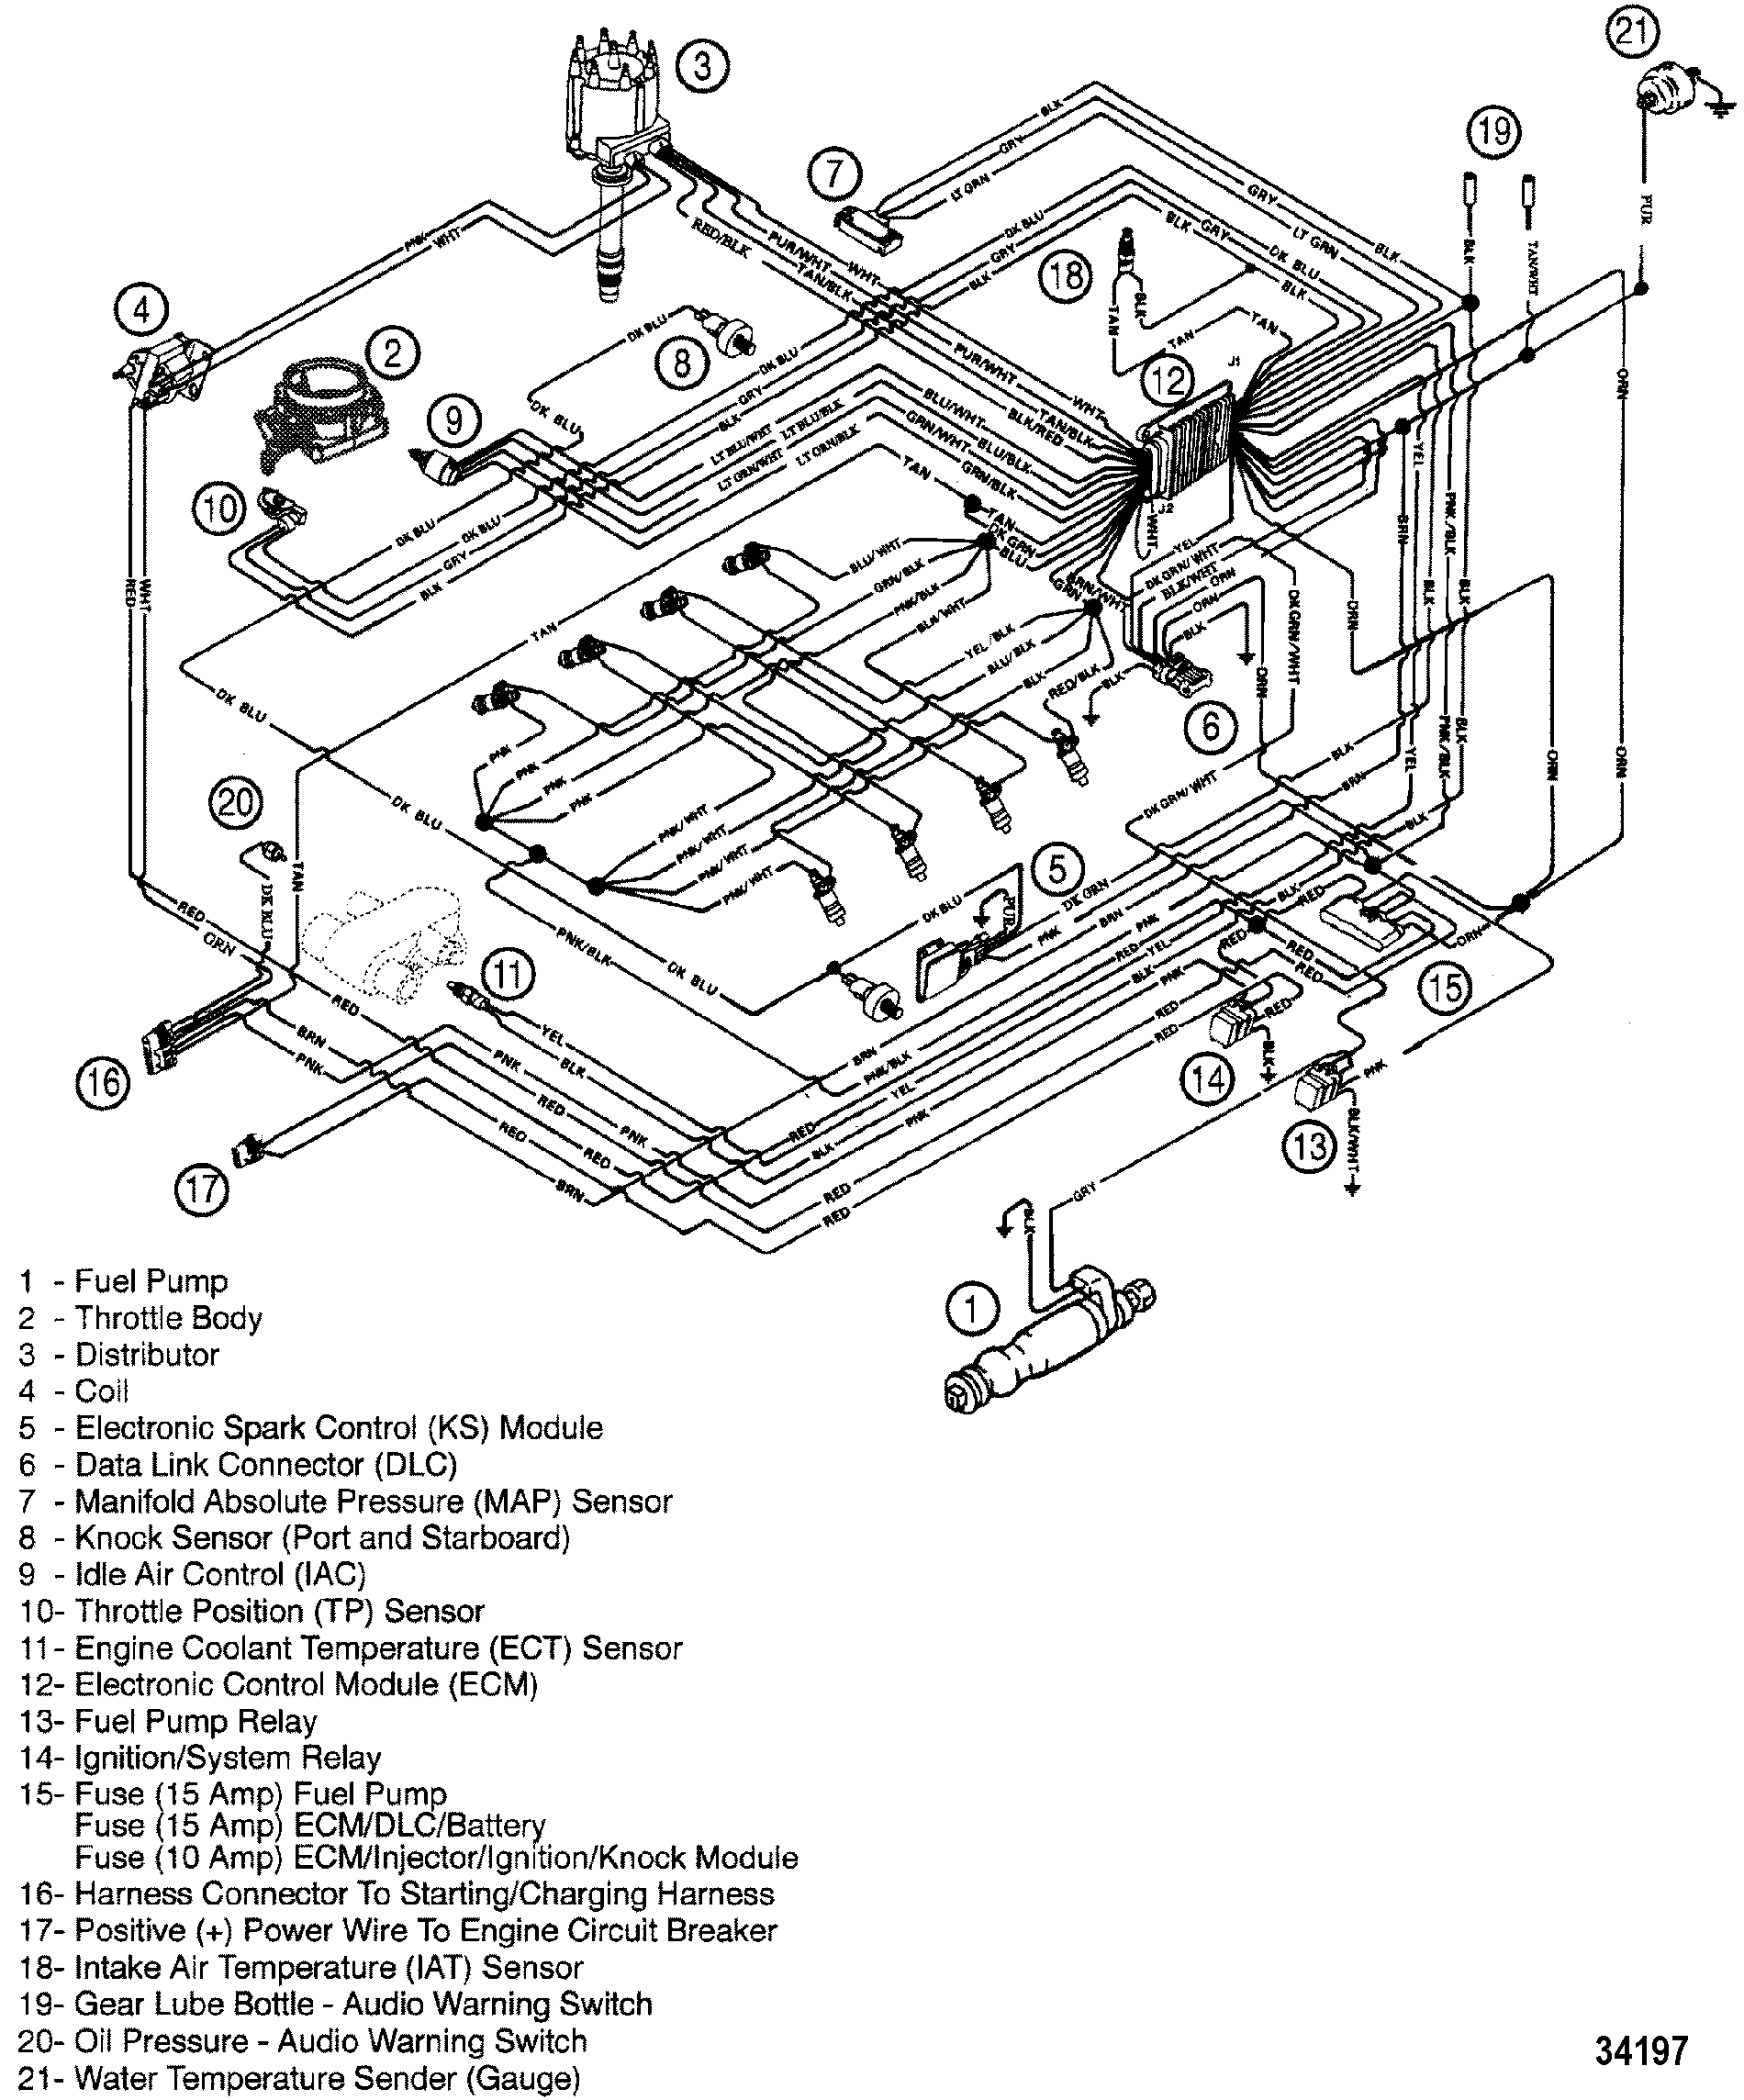 454 Tbi Wiring Diagram Efi Car Cp Performance Harness Efisection Drawing Hover Or Click To View Larger